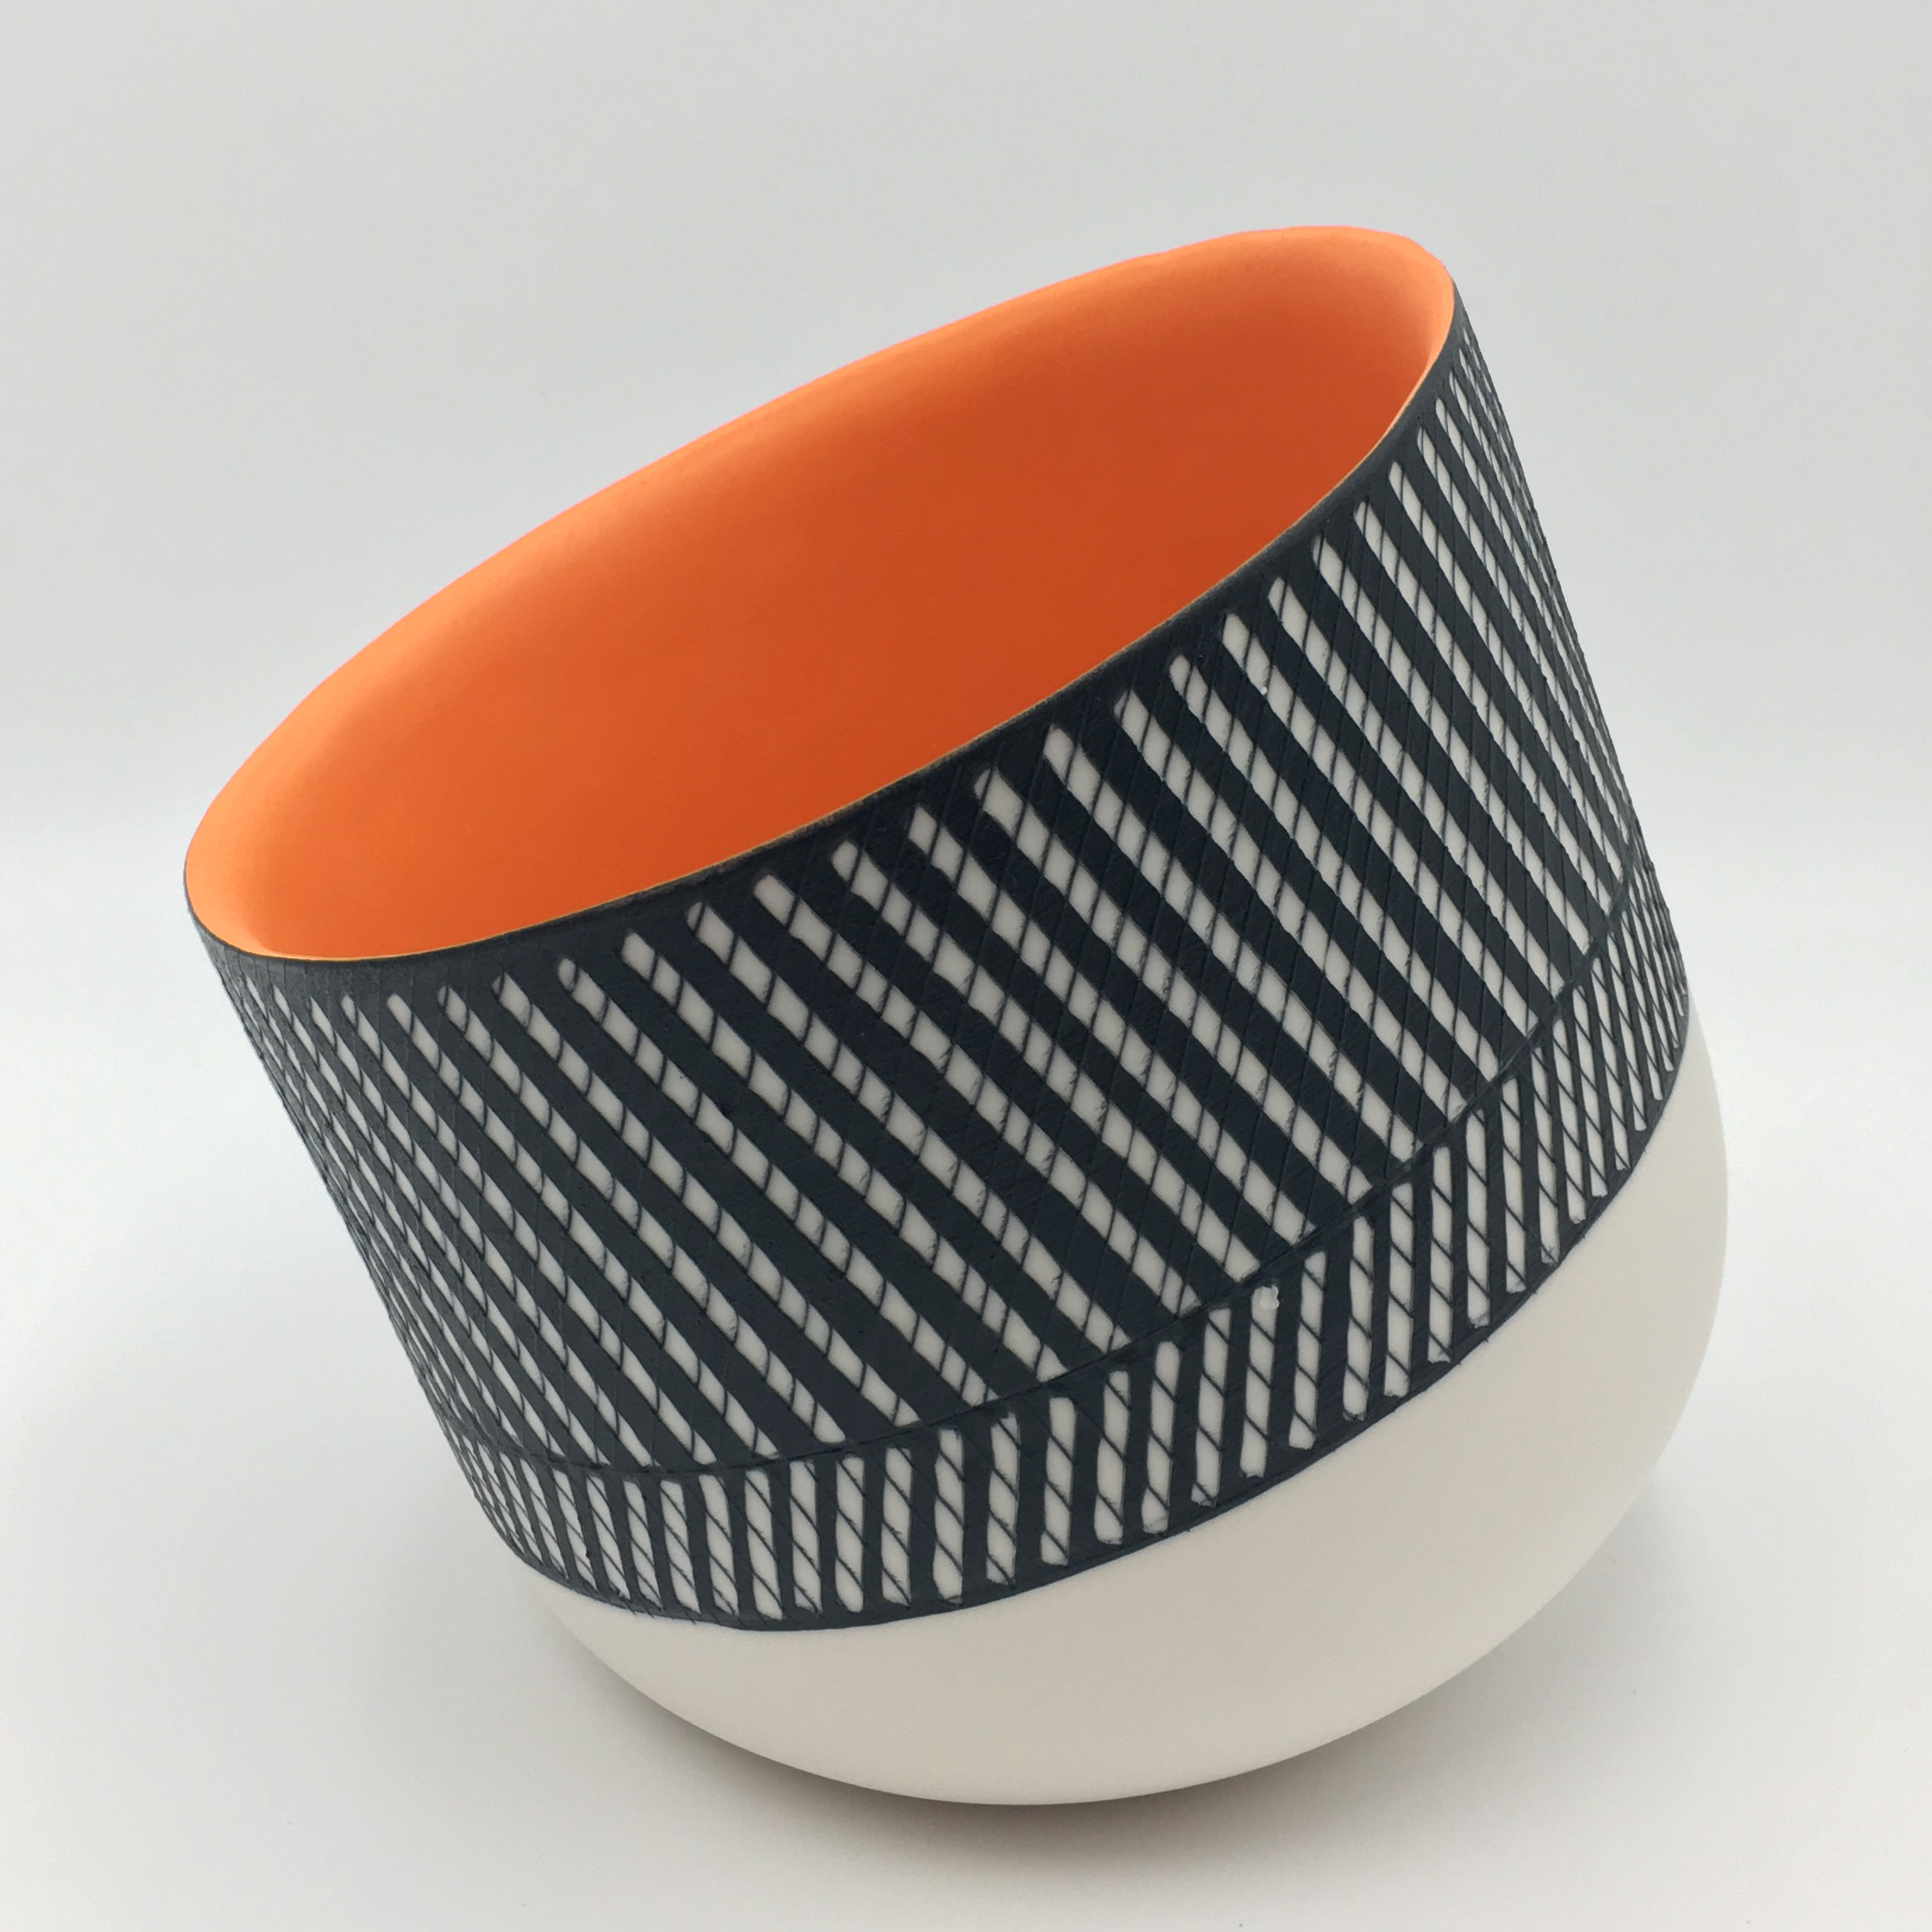 "<span class=""link fancybox-details-link""><a href=""/artists/195-lara-scobie/works/6513-lara-scobie-tilted-bowl-with-orange-interior-2019/"">View Detail Page</a></span><div class=""artist""><strong>Lara Scobie</strong></div> <div class=""title""><em>Tilted Bowl with Orange Interior</em>, 2019</div> <div class=""medium"">Porcelain</div><div class=""copyright_line"">Own Art: £45 x 10 Months, 0% APR</div>"